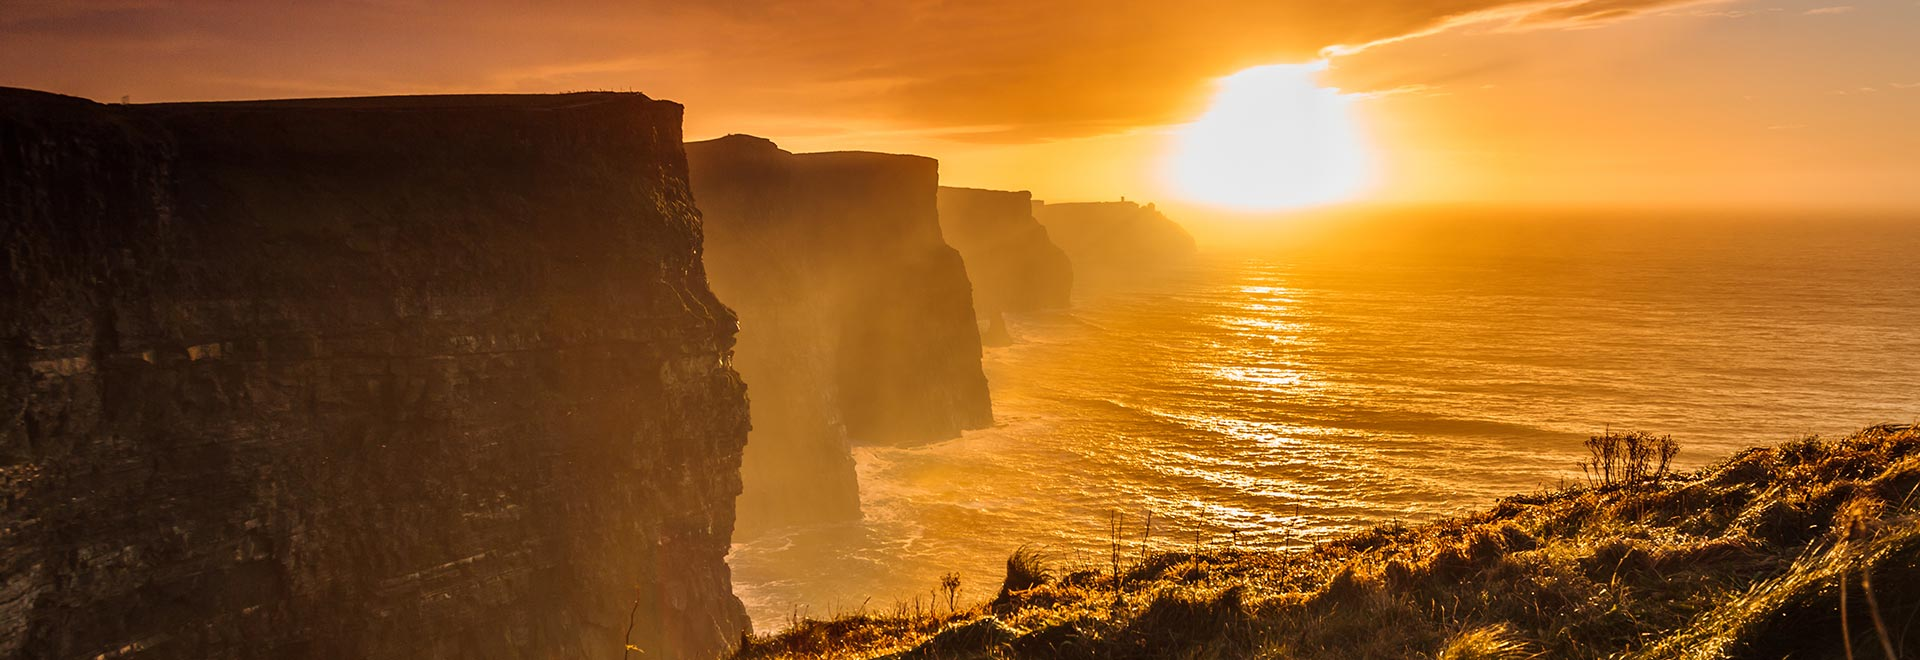 Europe Ireland Country Clare Moher Cliffs